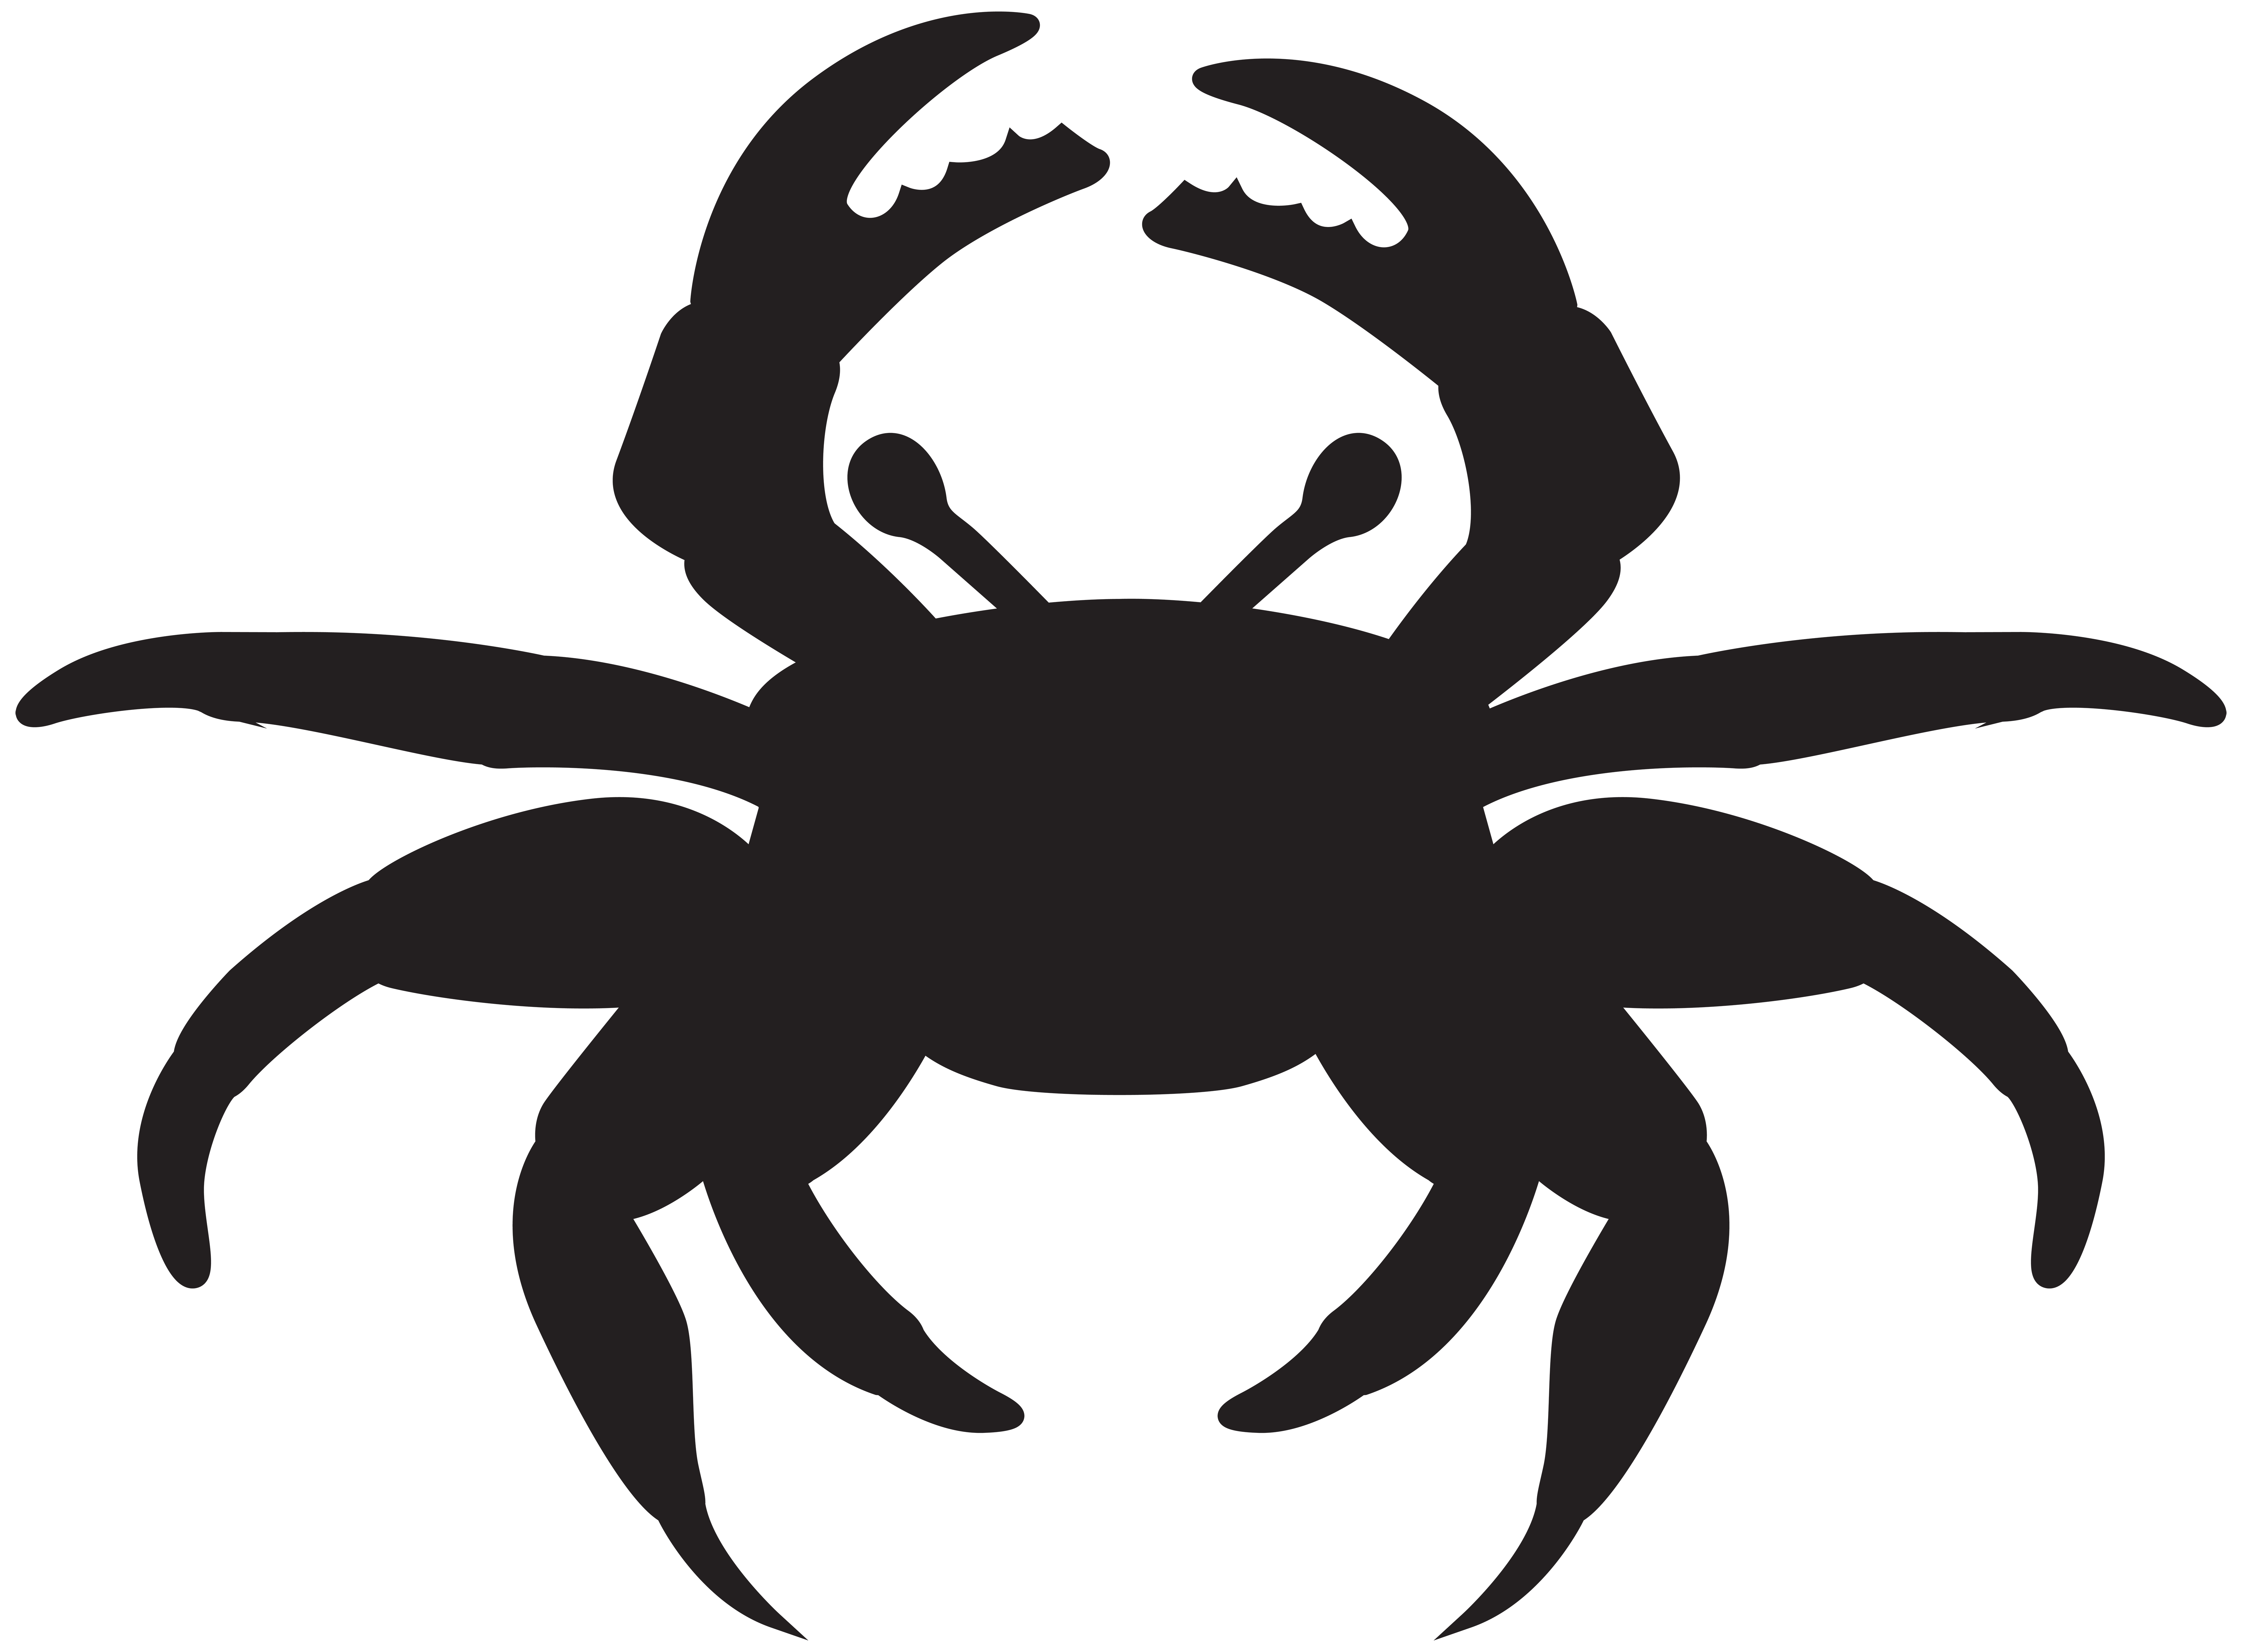 Silhouette png clip art. Crabs clipart crab claw